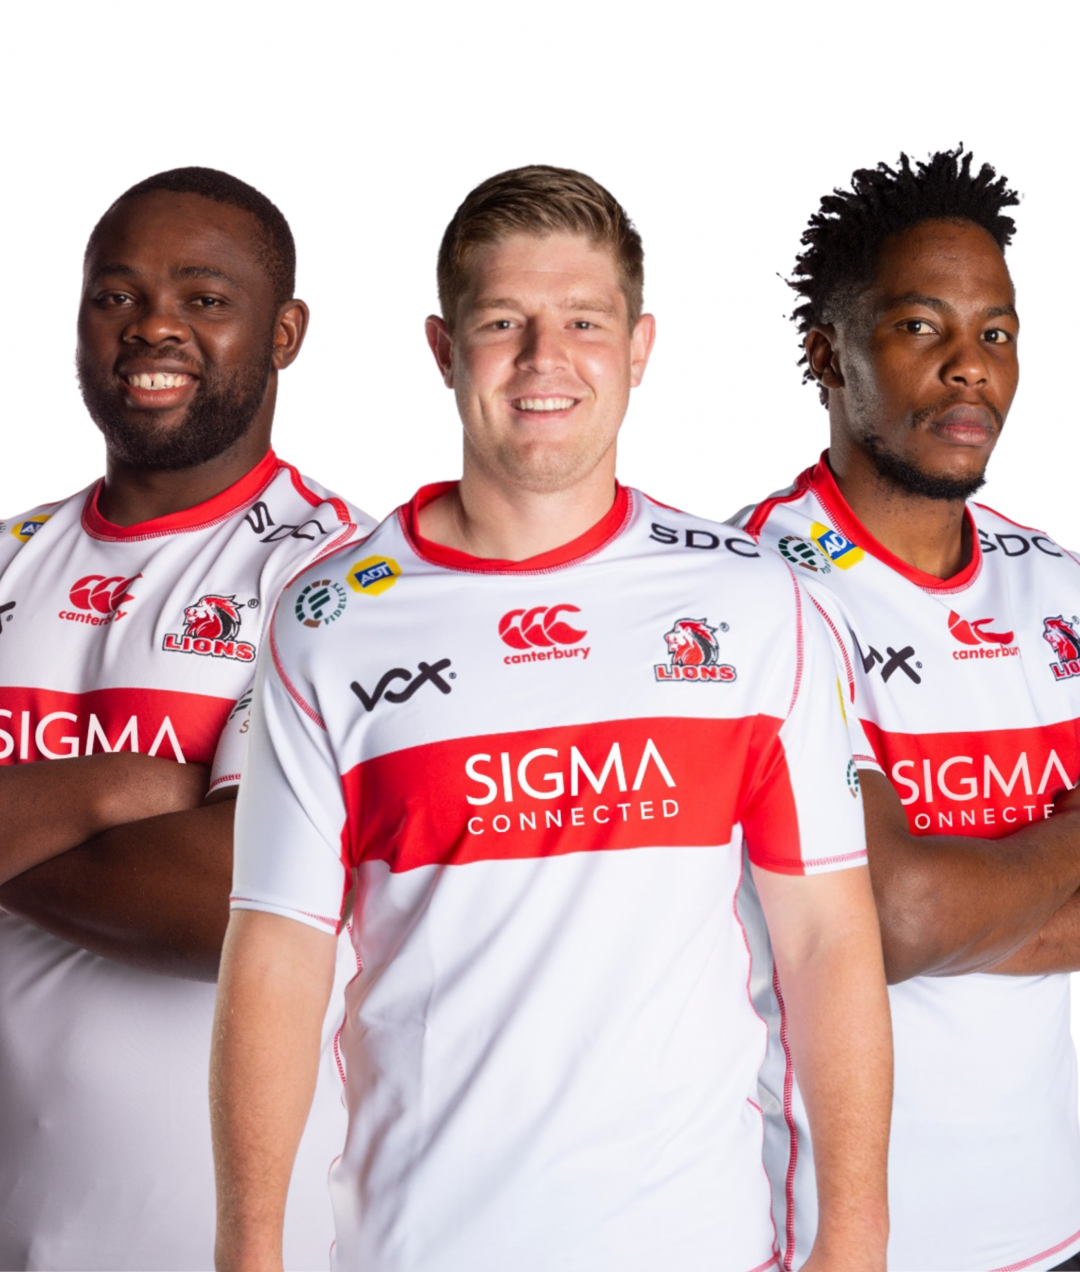 Sigma Connected Announces South African Rugby Partnership